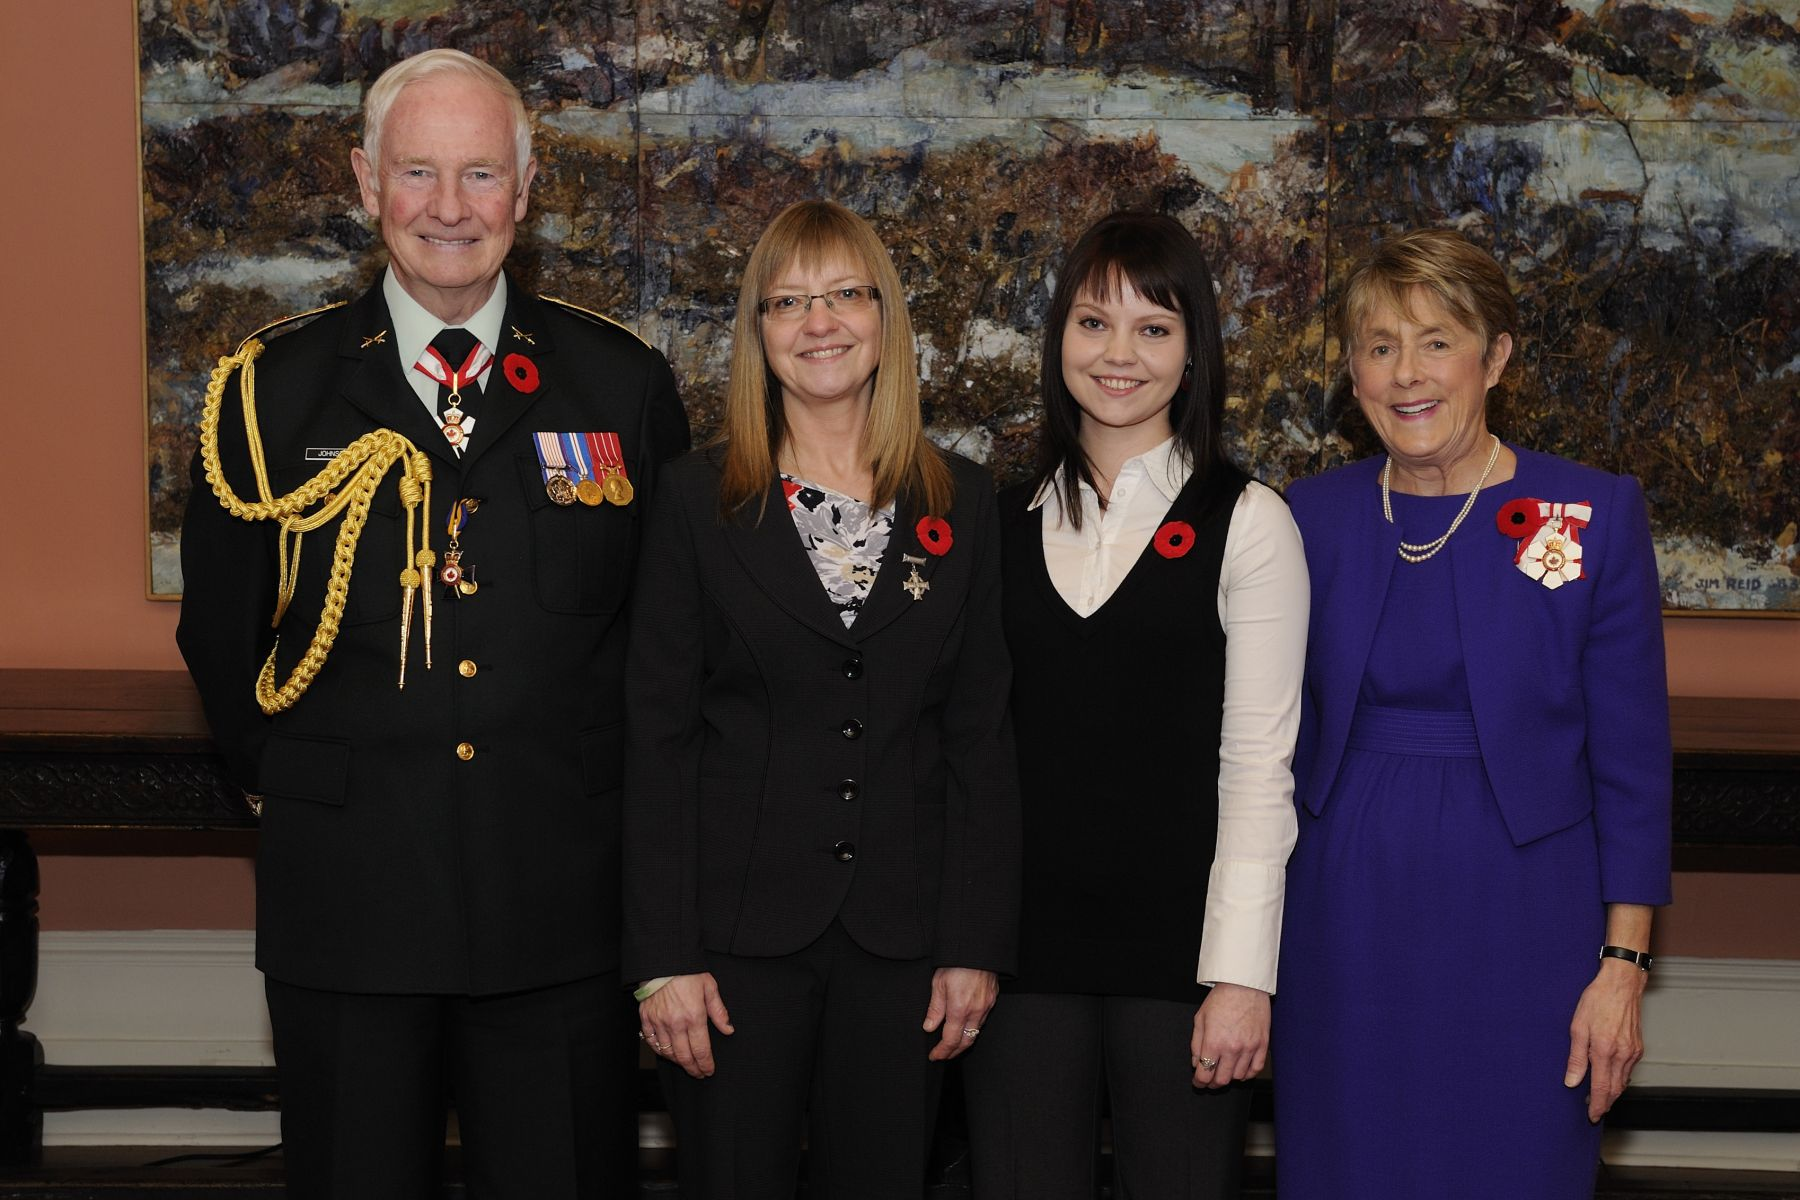 Their Excellencies hosted a luncheon at Rideau Hall to pay tribute to this year's National Silver Cross Mother, Mrs. Patricia (Patty) Elaine Braun (right of the Governor General), whose son, Corporal David Robert William Braun, was killed by a suicide bomber in a vehicle attack while on patrol in Kandahar, Afghanistan, on August 22, 2006. Each year, the Silver Cross Mother is chosen by the Royal Canadian Legion to attend the National Remembrance Day Ceremony on behalf of all Canadian mothers who have lost children in the service to their country. Mrs. Braun's daughter Katie (left of Her Excellency) also attended the luncheon.